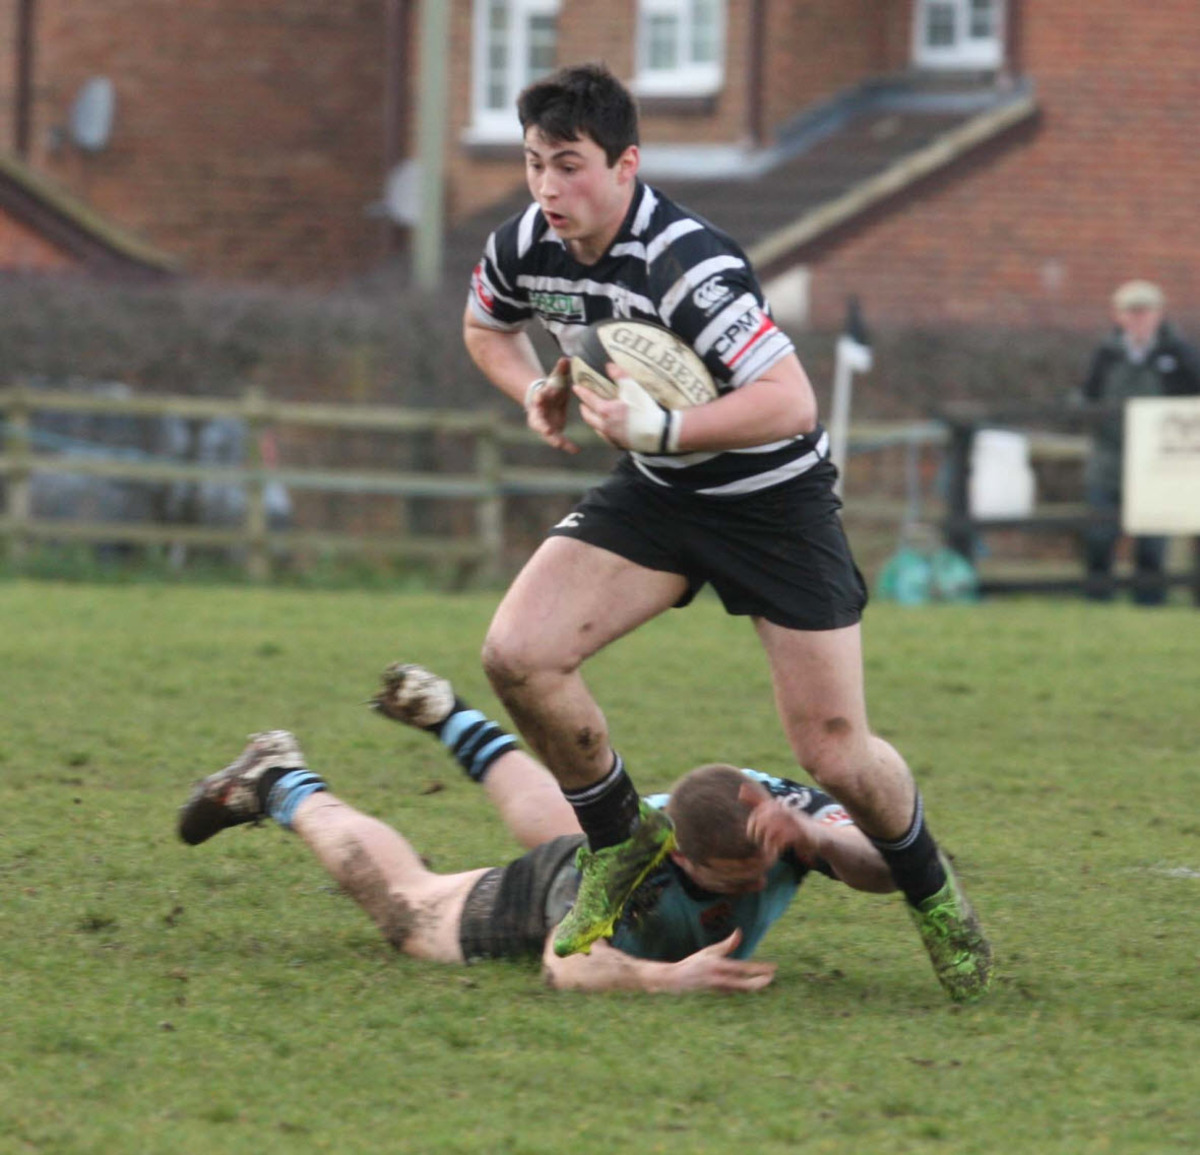 Will Millett scored 15 points for Chinnor